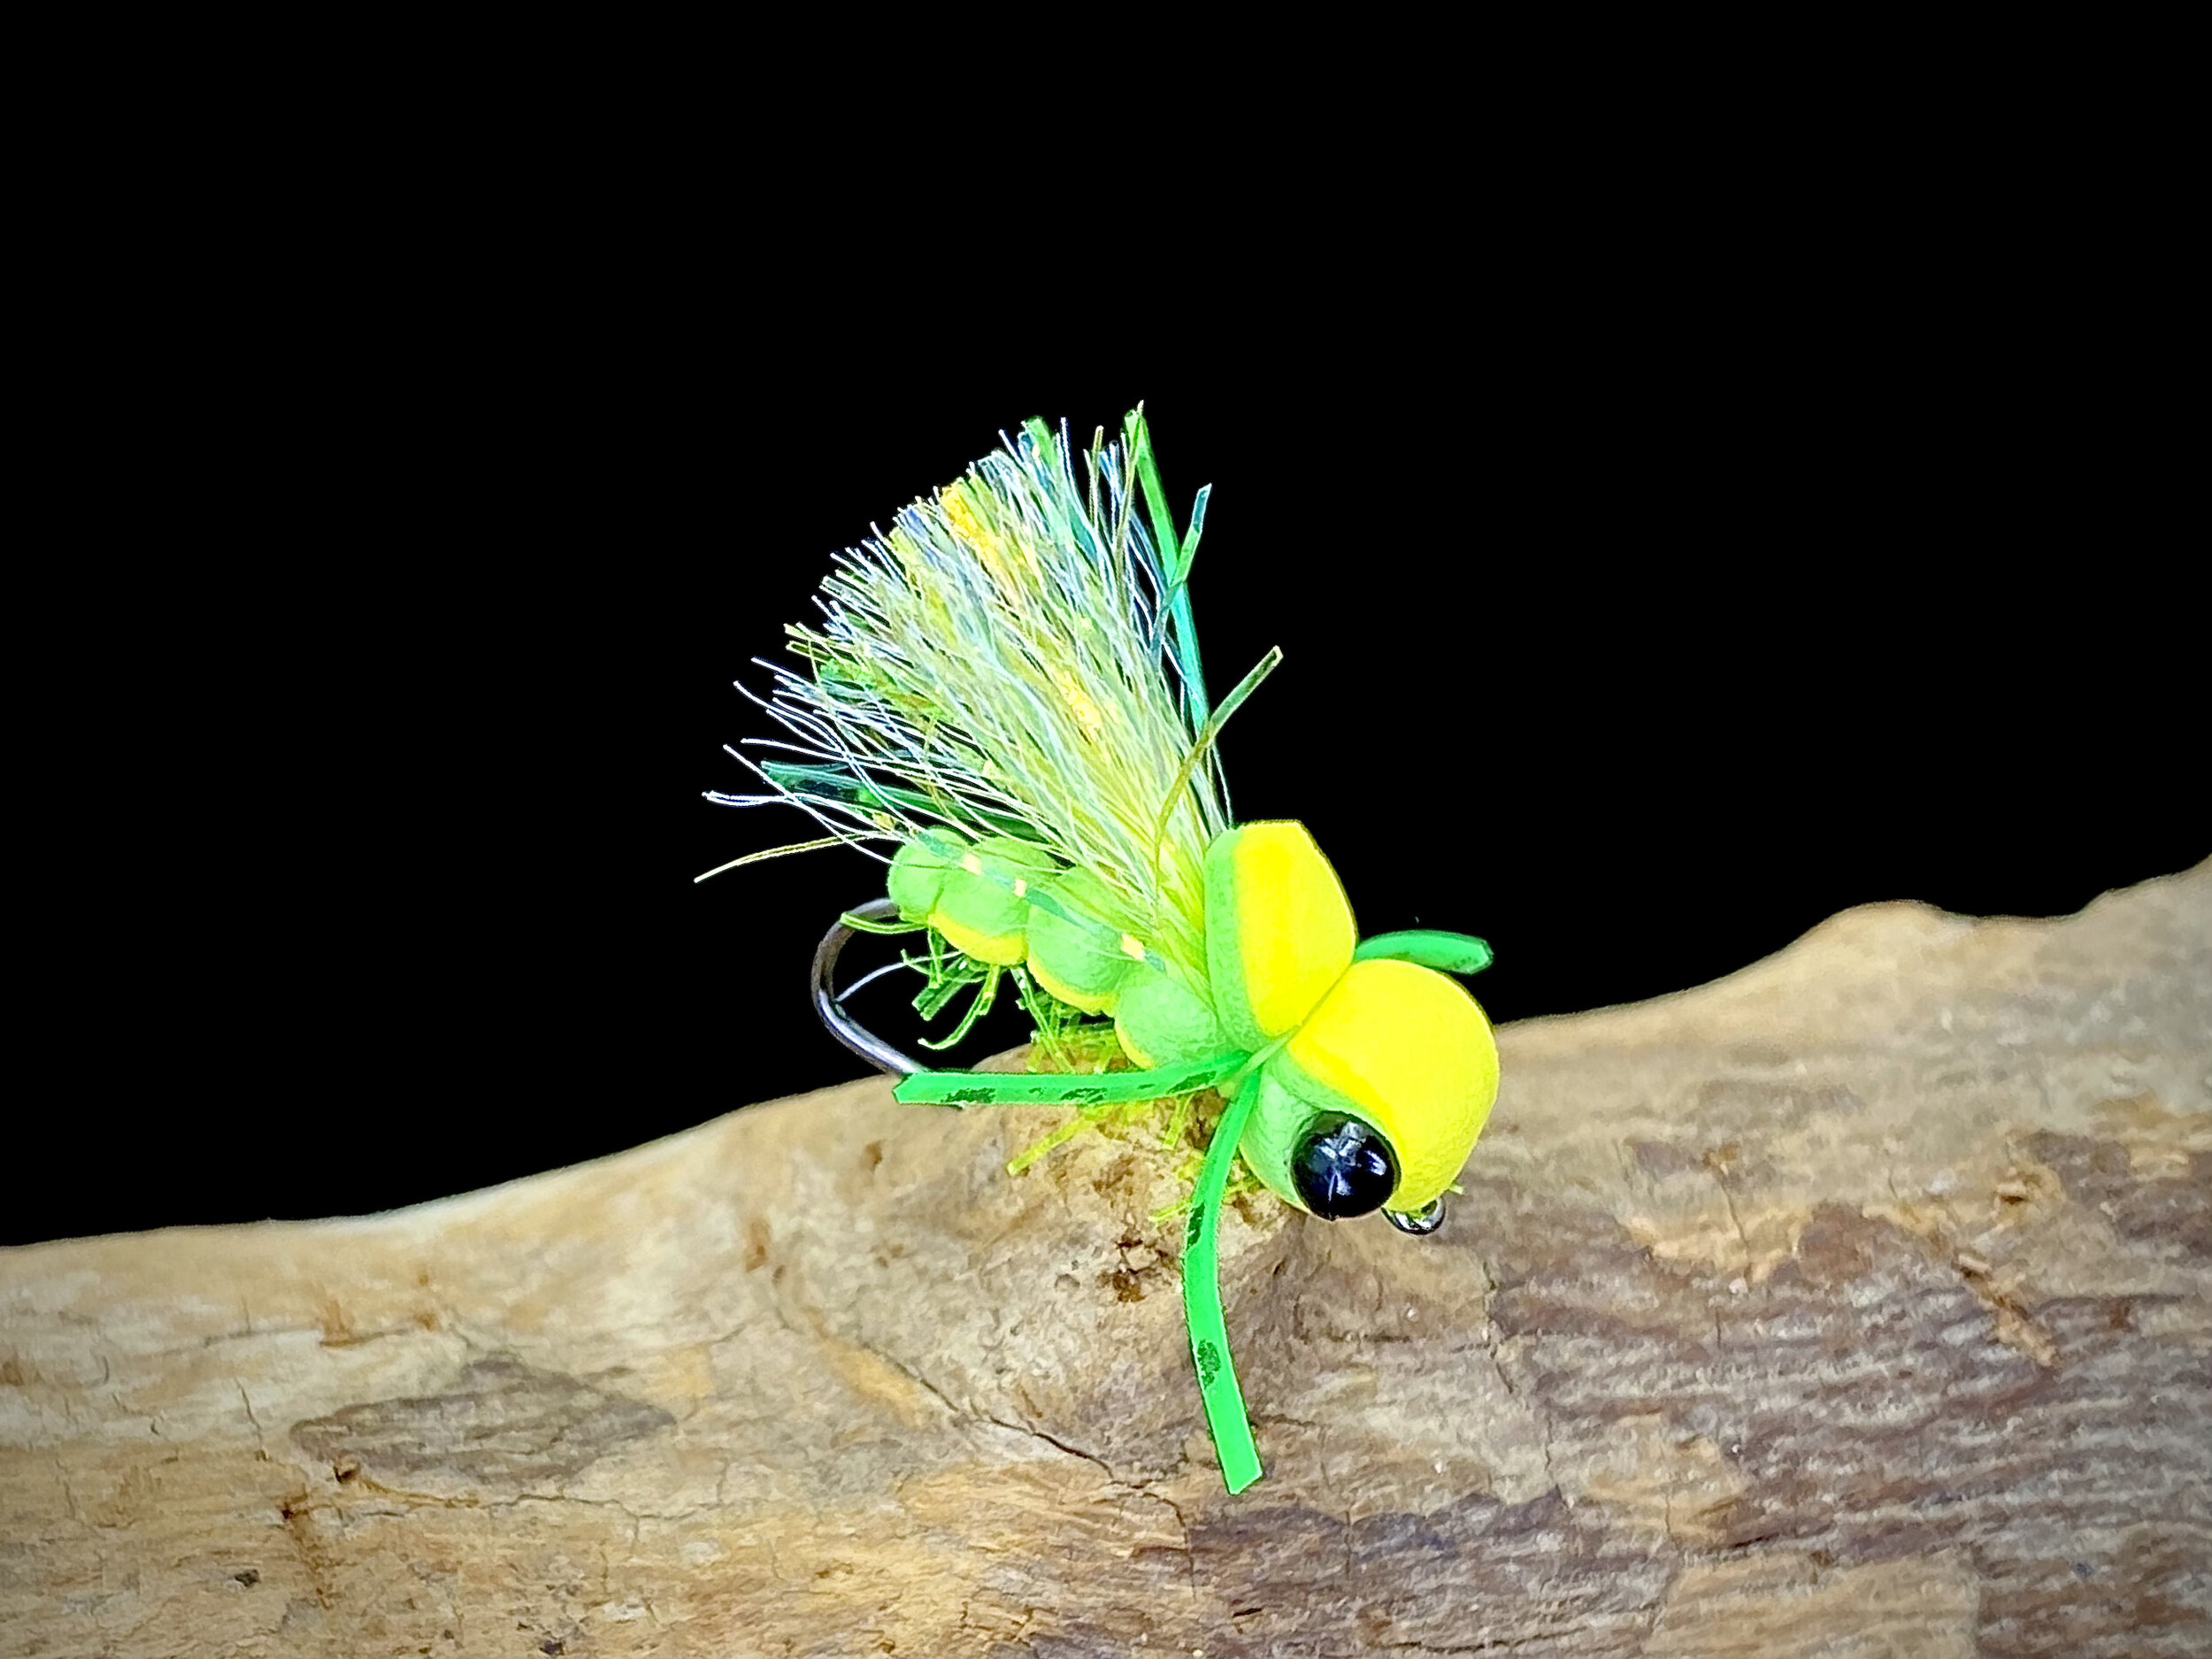 Brighten up the colors, swap out the knotted legs for rubber and add a wing and you have a great looking topwater bug!